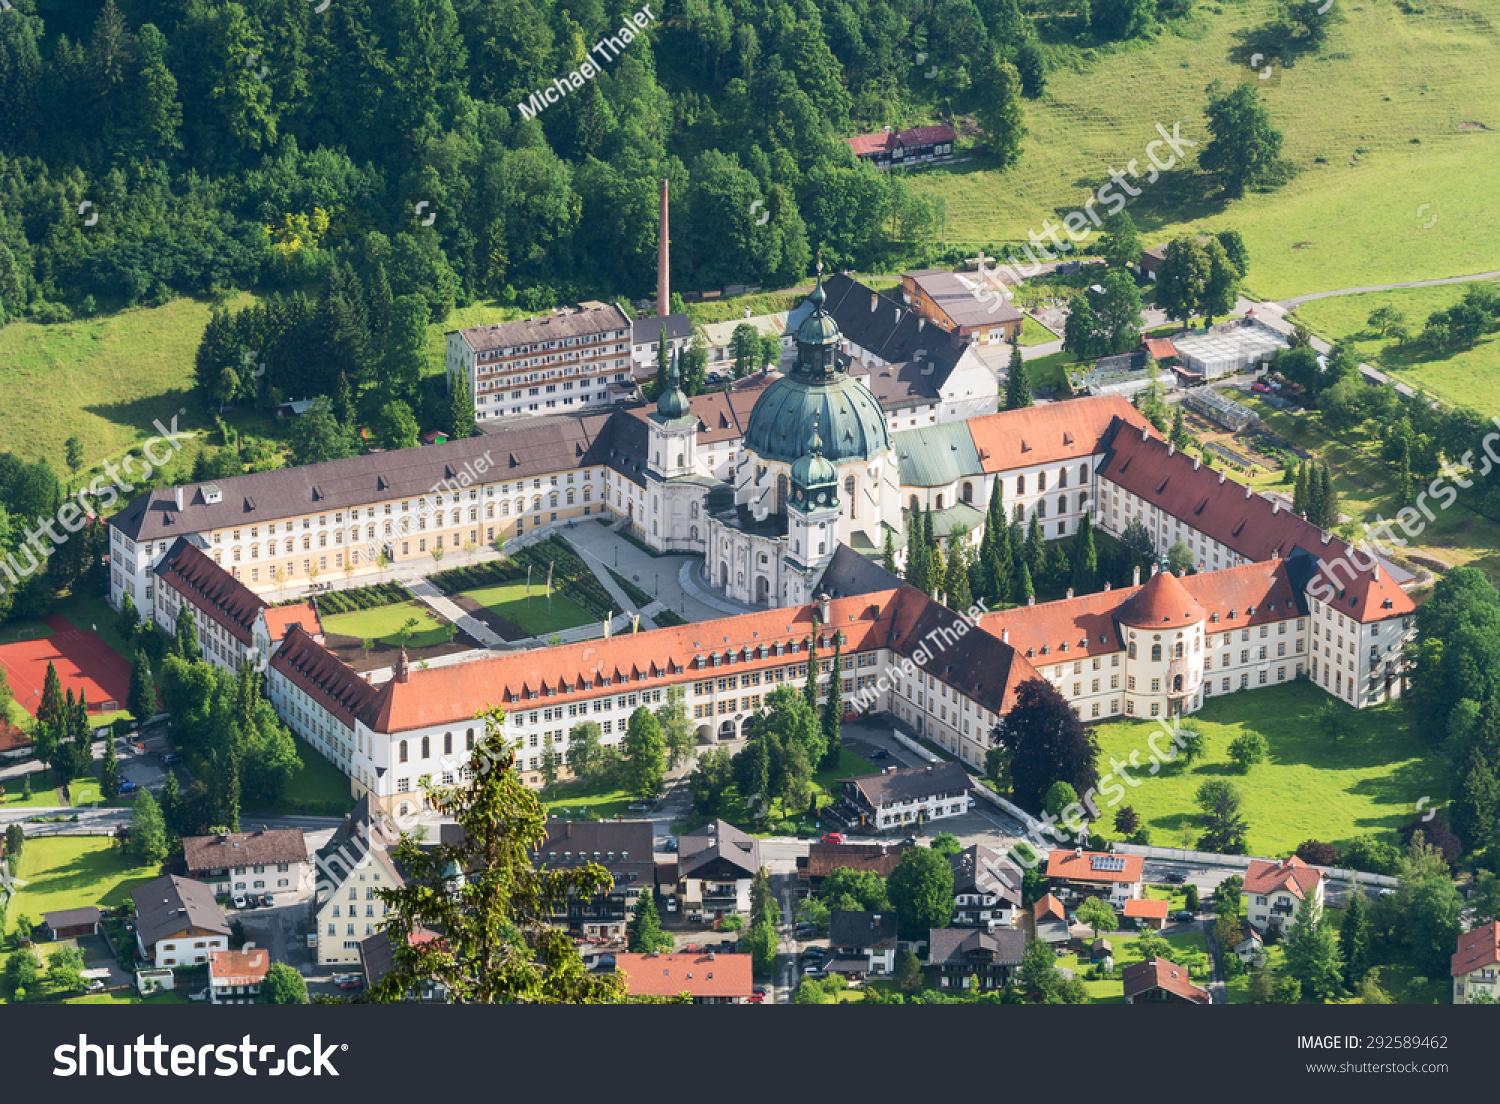 Ettal Germany  city images : ... To It, Ettal, Bavaria, Germany Stock Photo 292589462 : Shutterstock